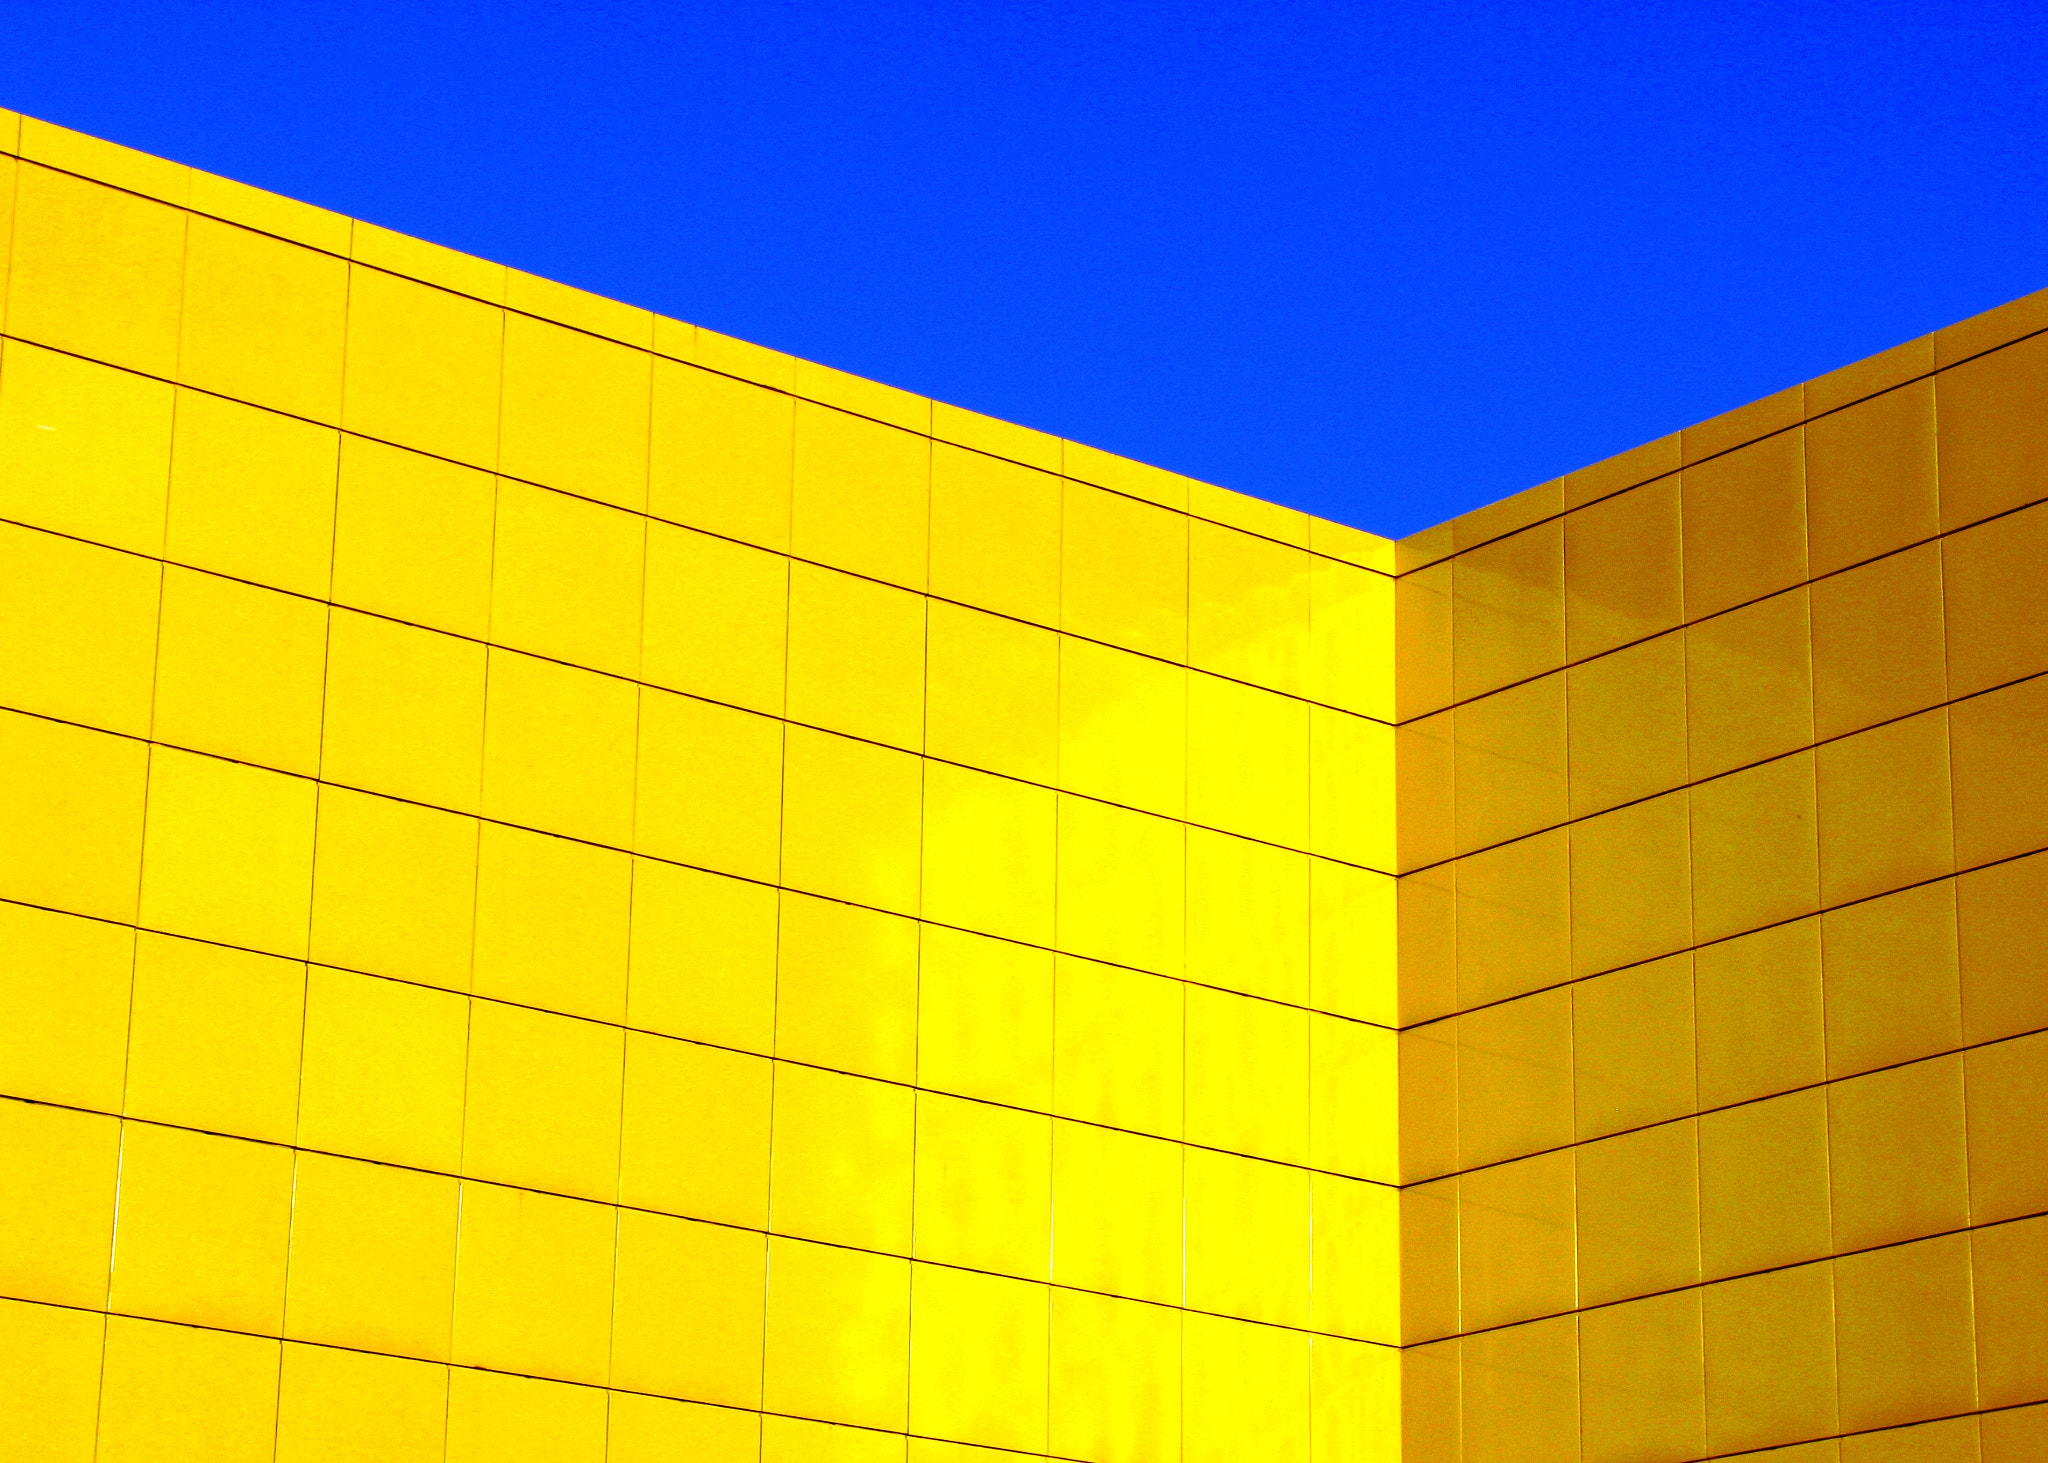 Photograph Butterdome by Adrian Berg on 500px